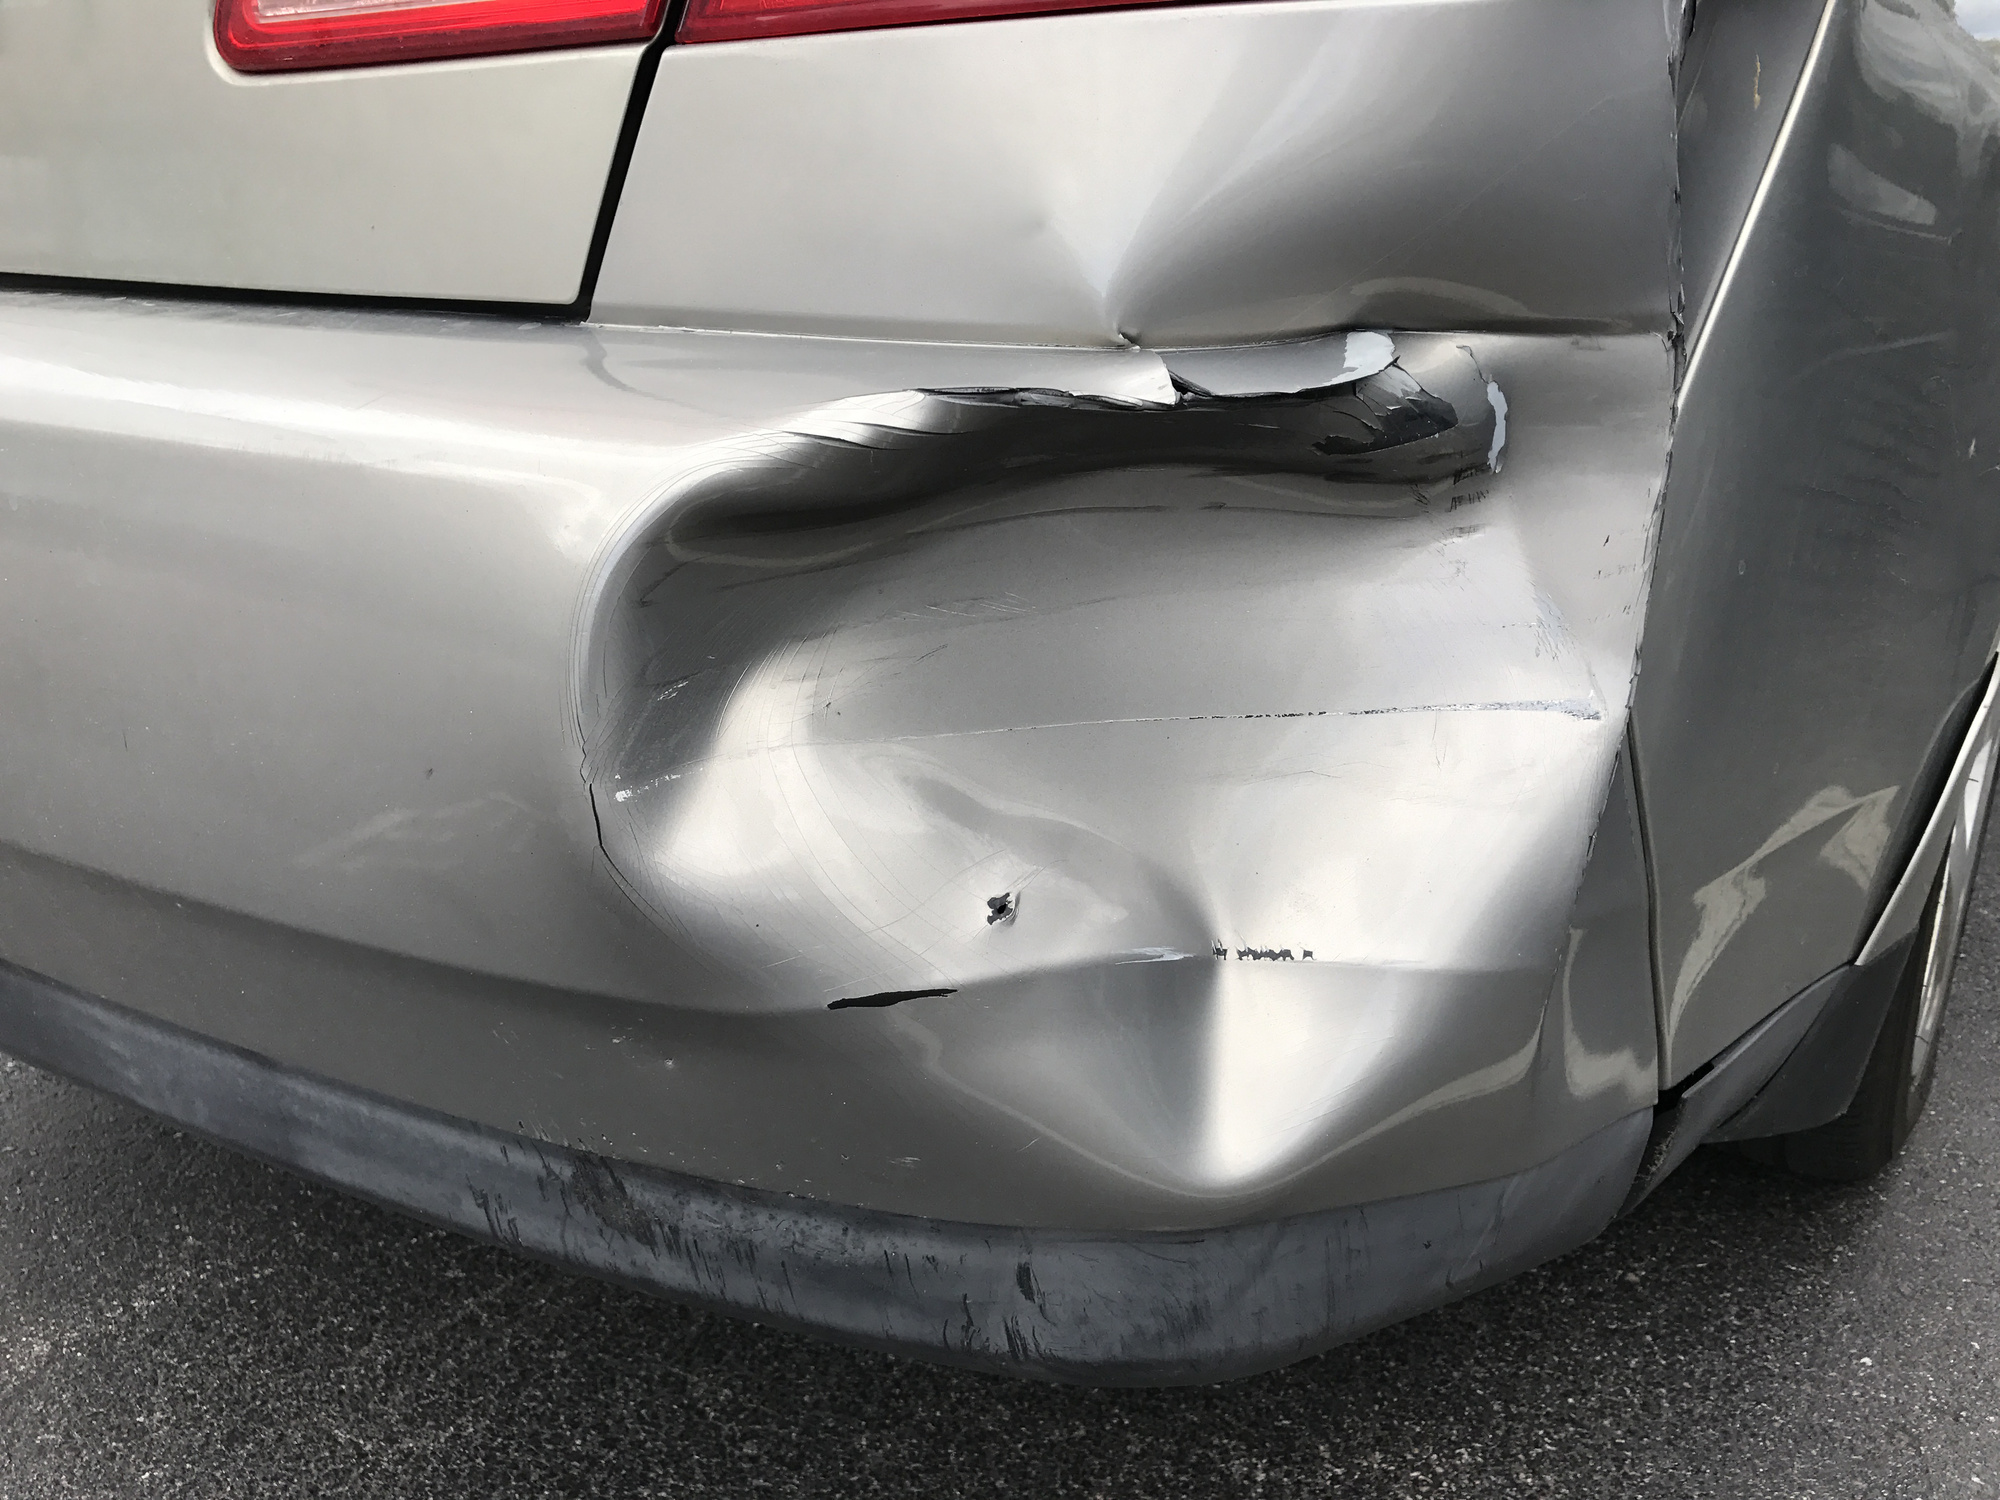 dent in car bumper